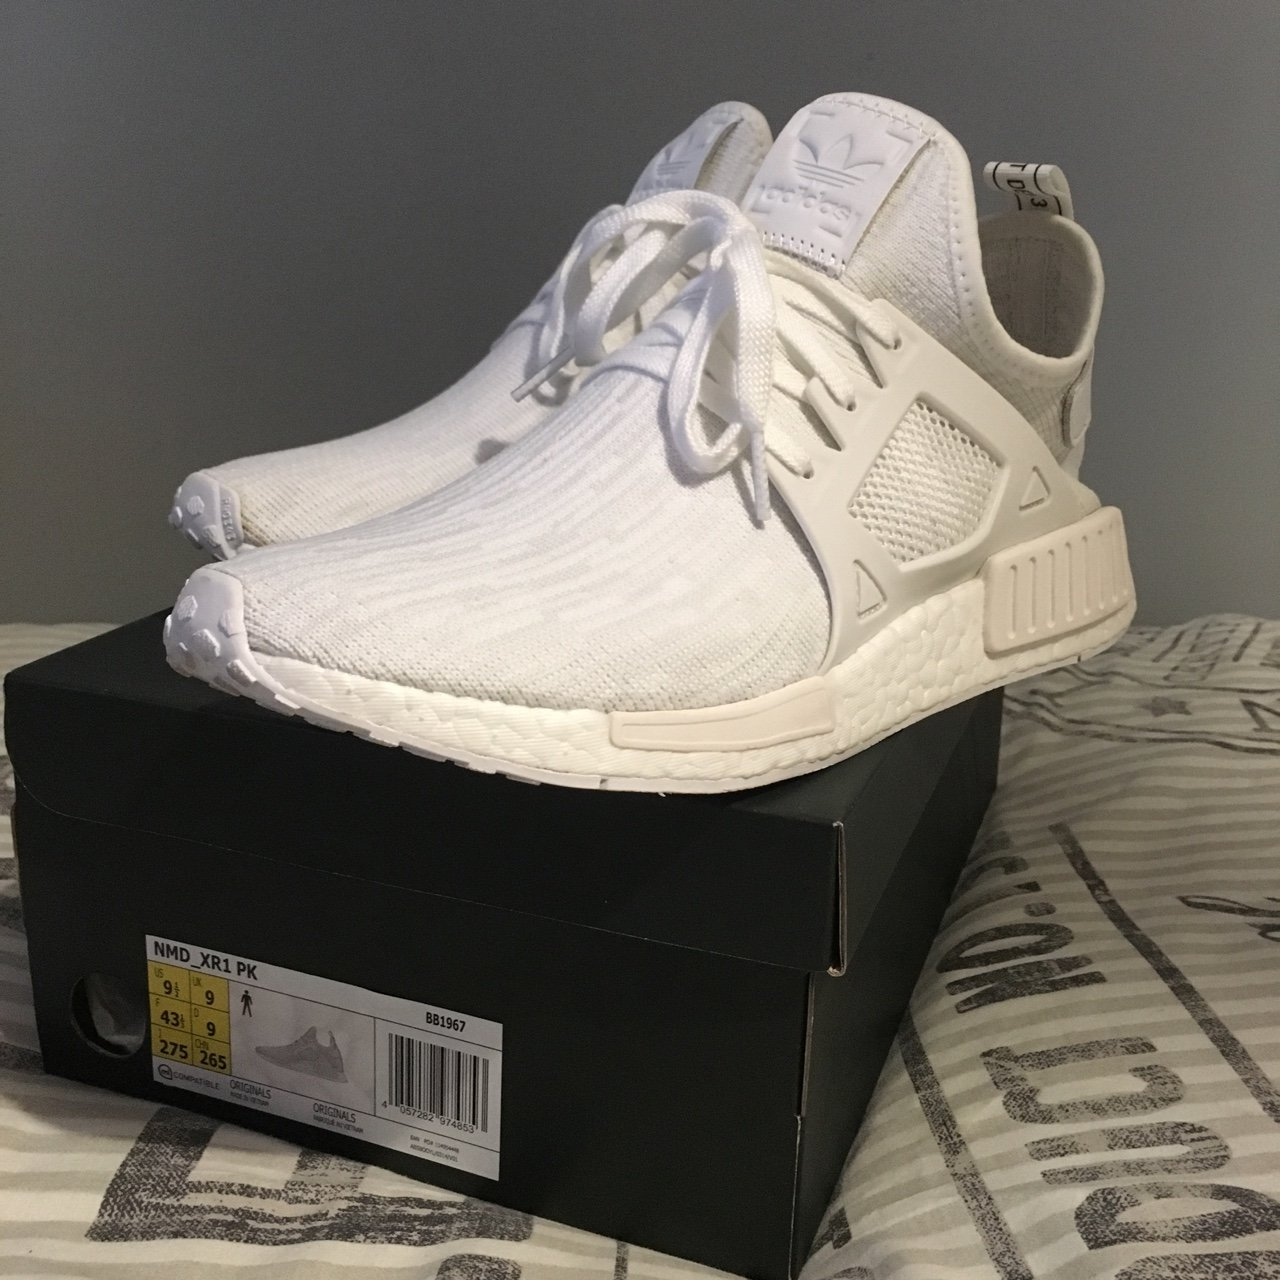 reputable site deb9f eb95e  charlie hatton. 2 years ago. Witney, UK. Adidas NMD XR1 PrimeKnit ...